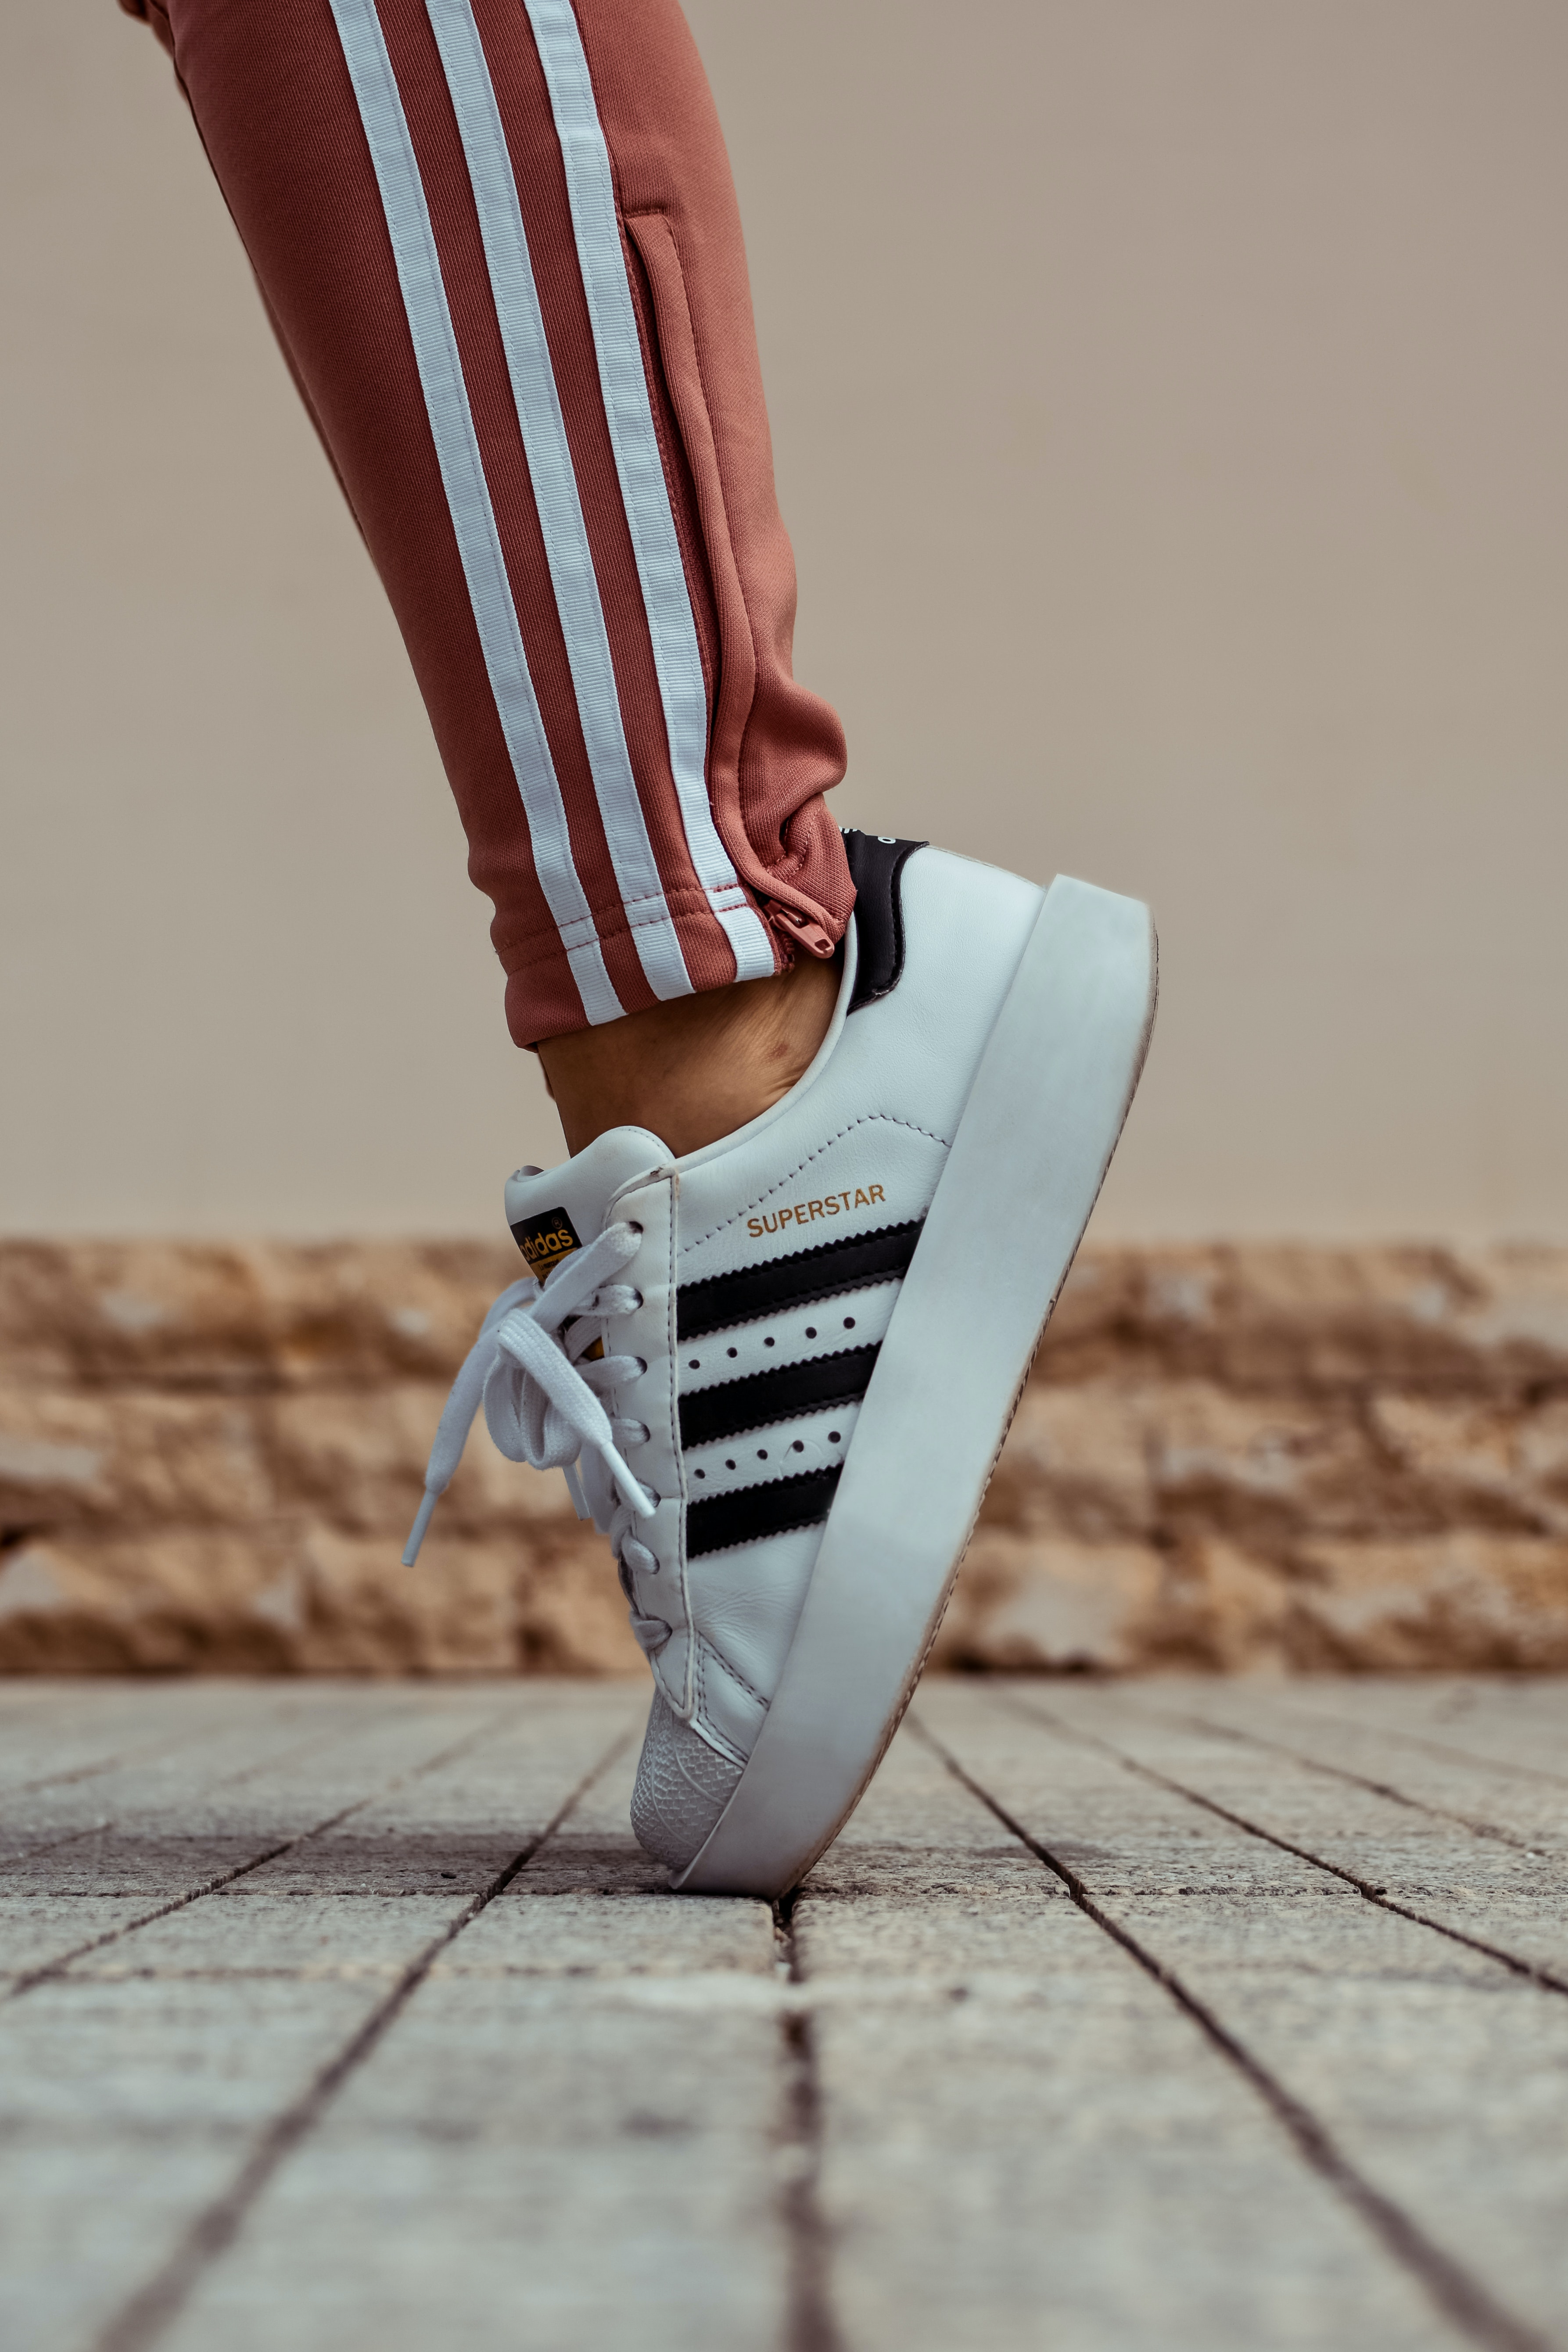 Shoes Images  Pexels  Free Stock Photos-5856